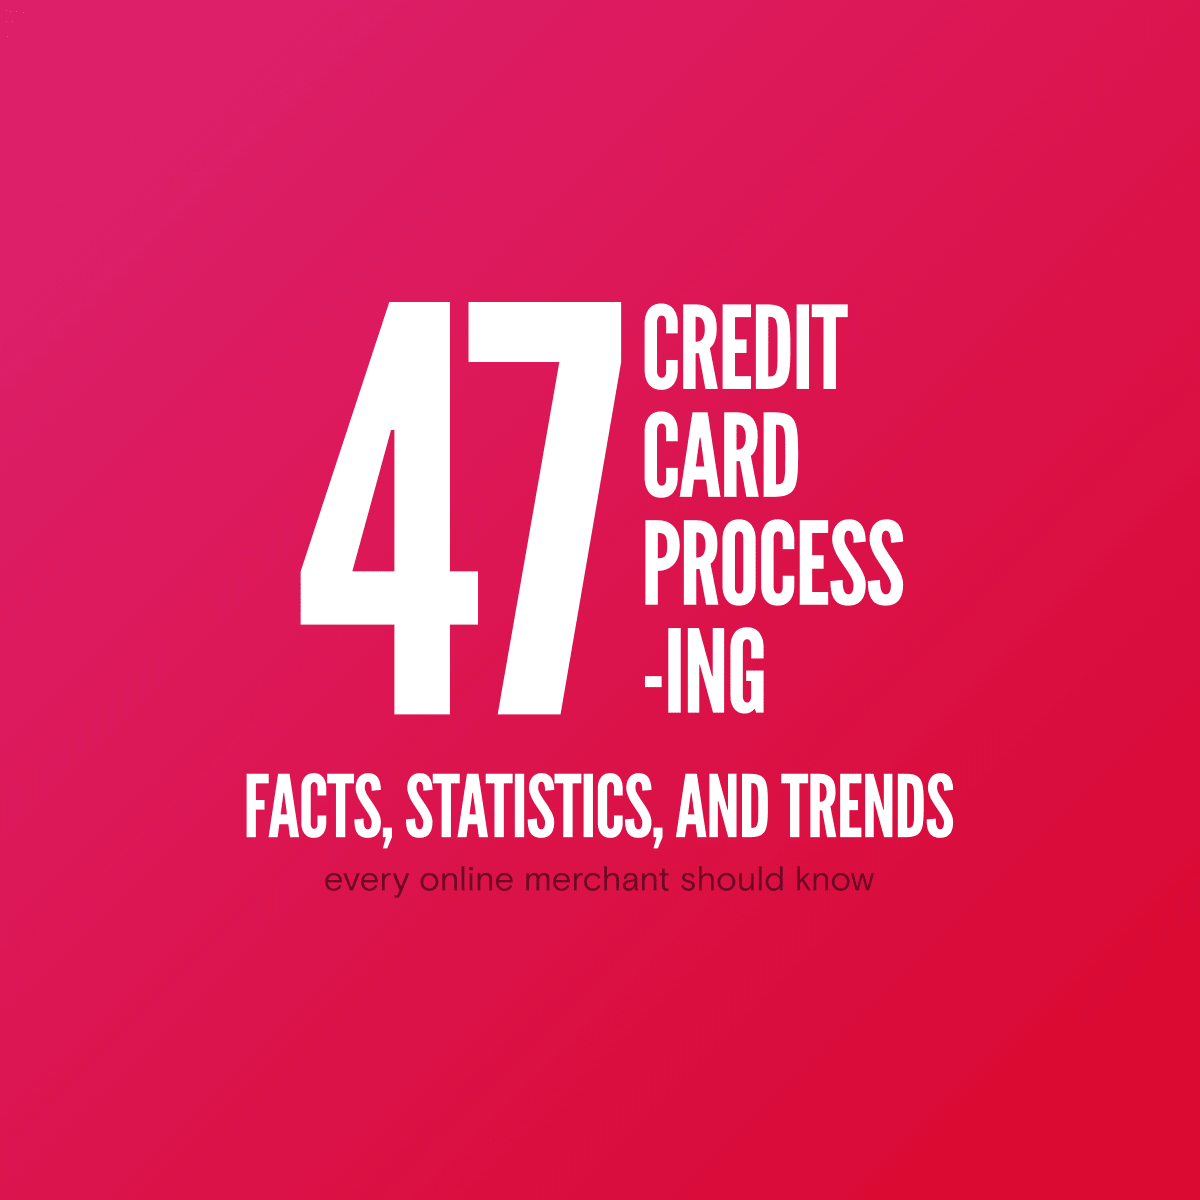 Credit card processing facts, statistics and trends of 2017